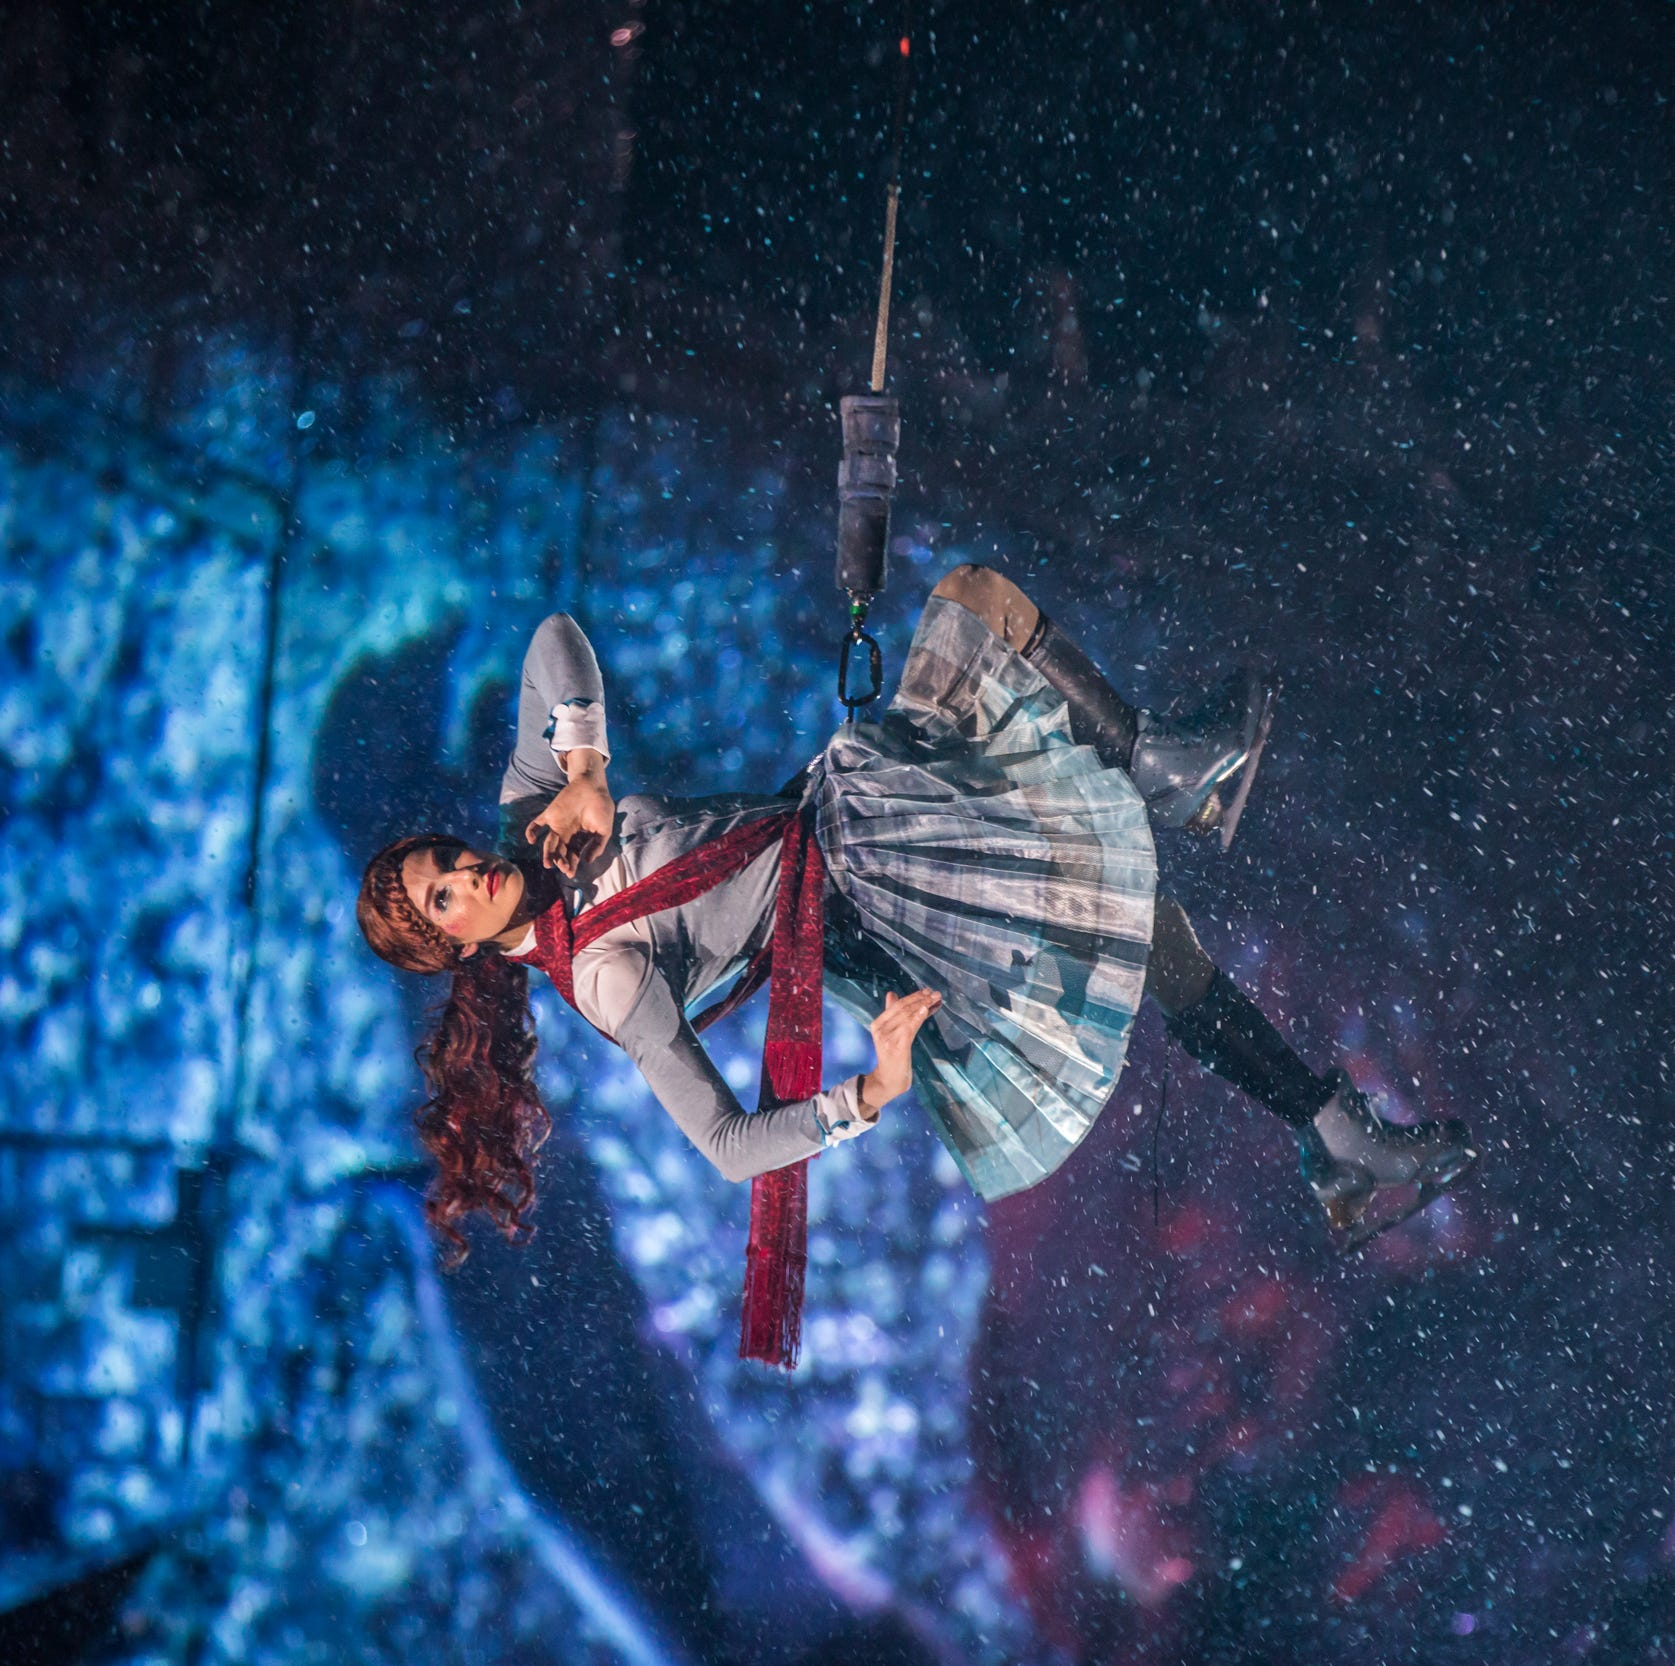 Acrobatics meet ice skating in 'Crystal,' a Cirque du Soleil first